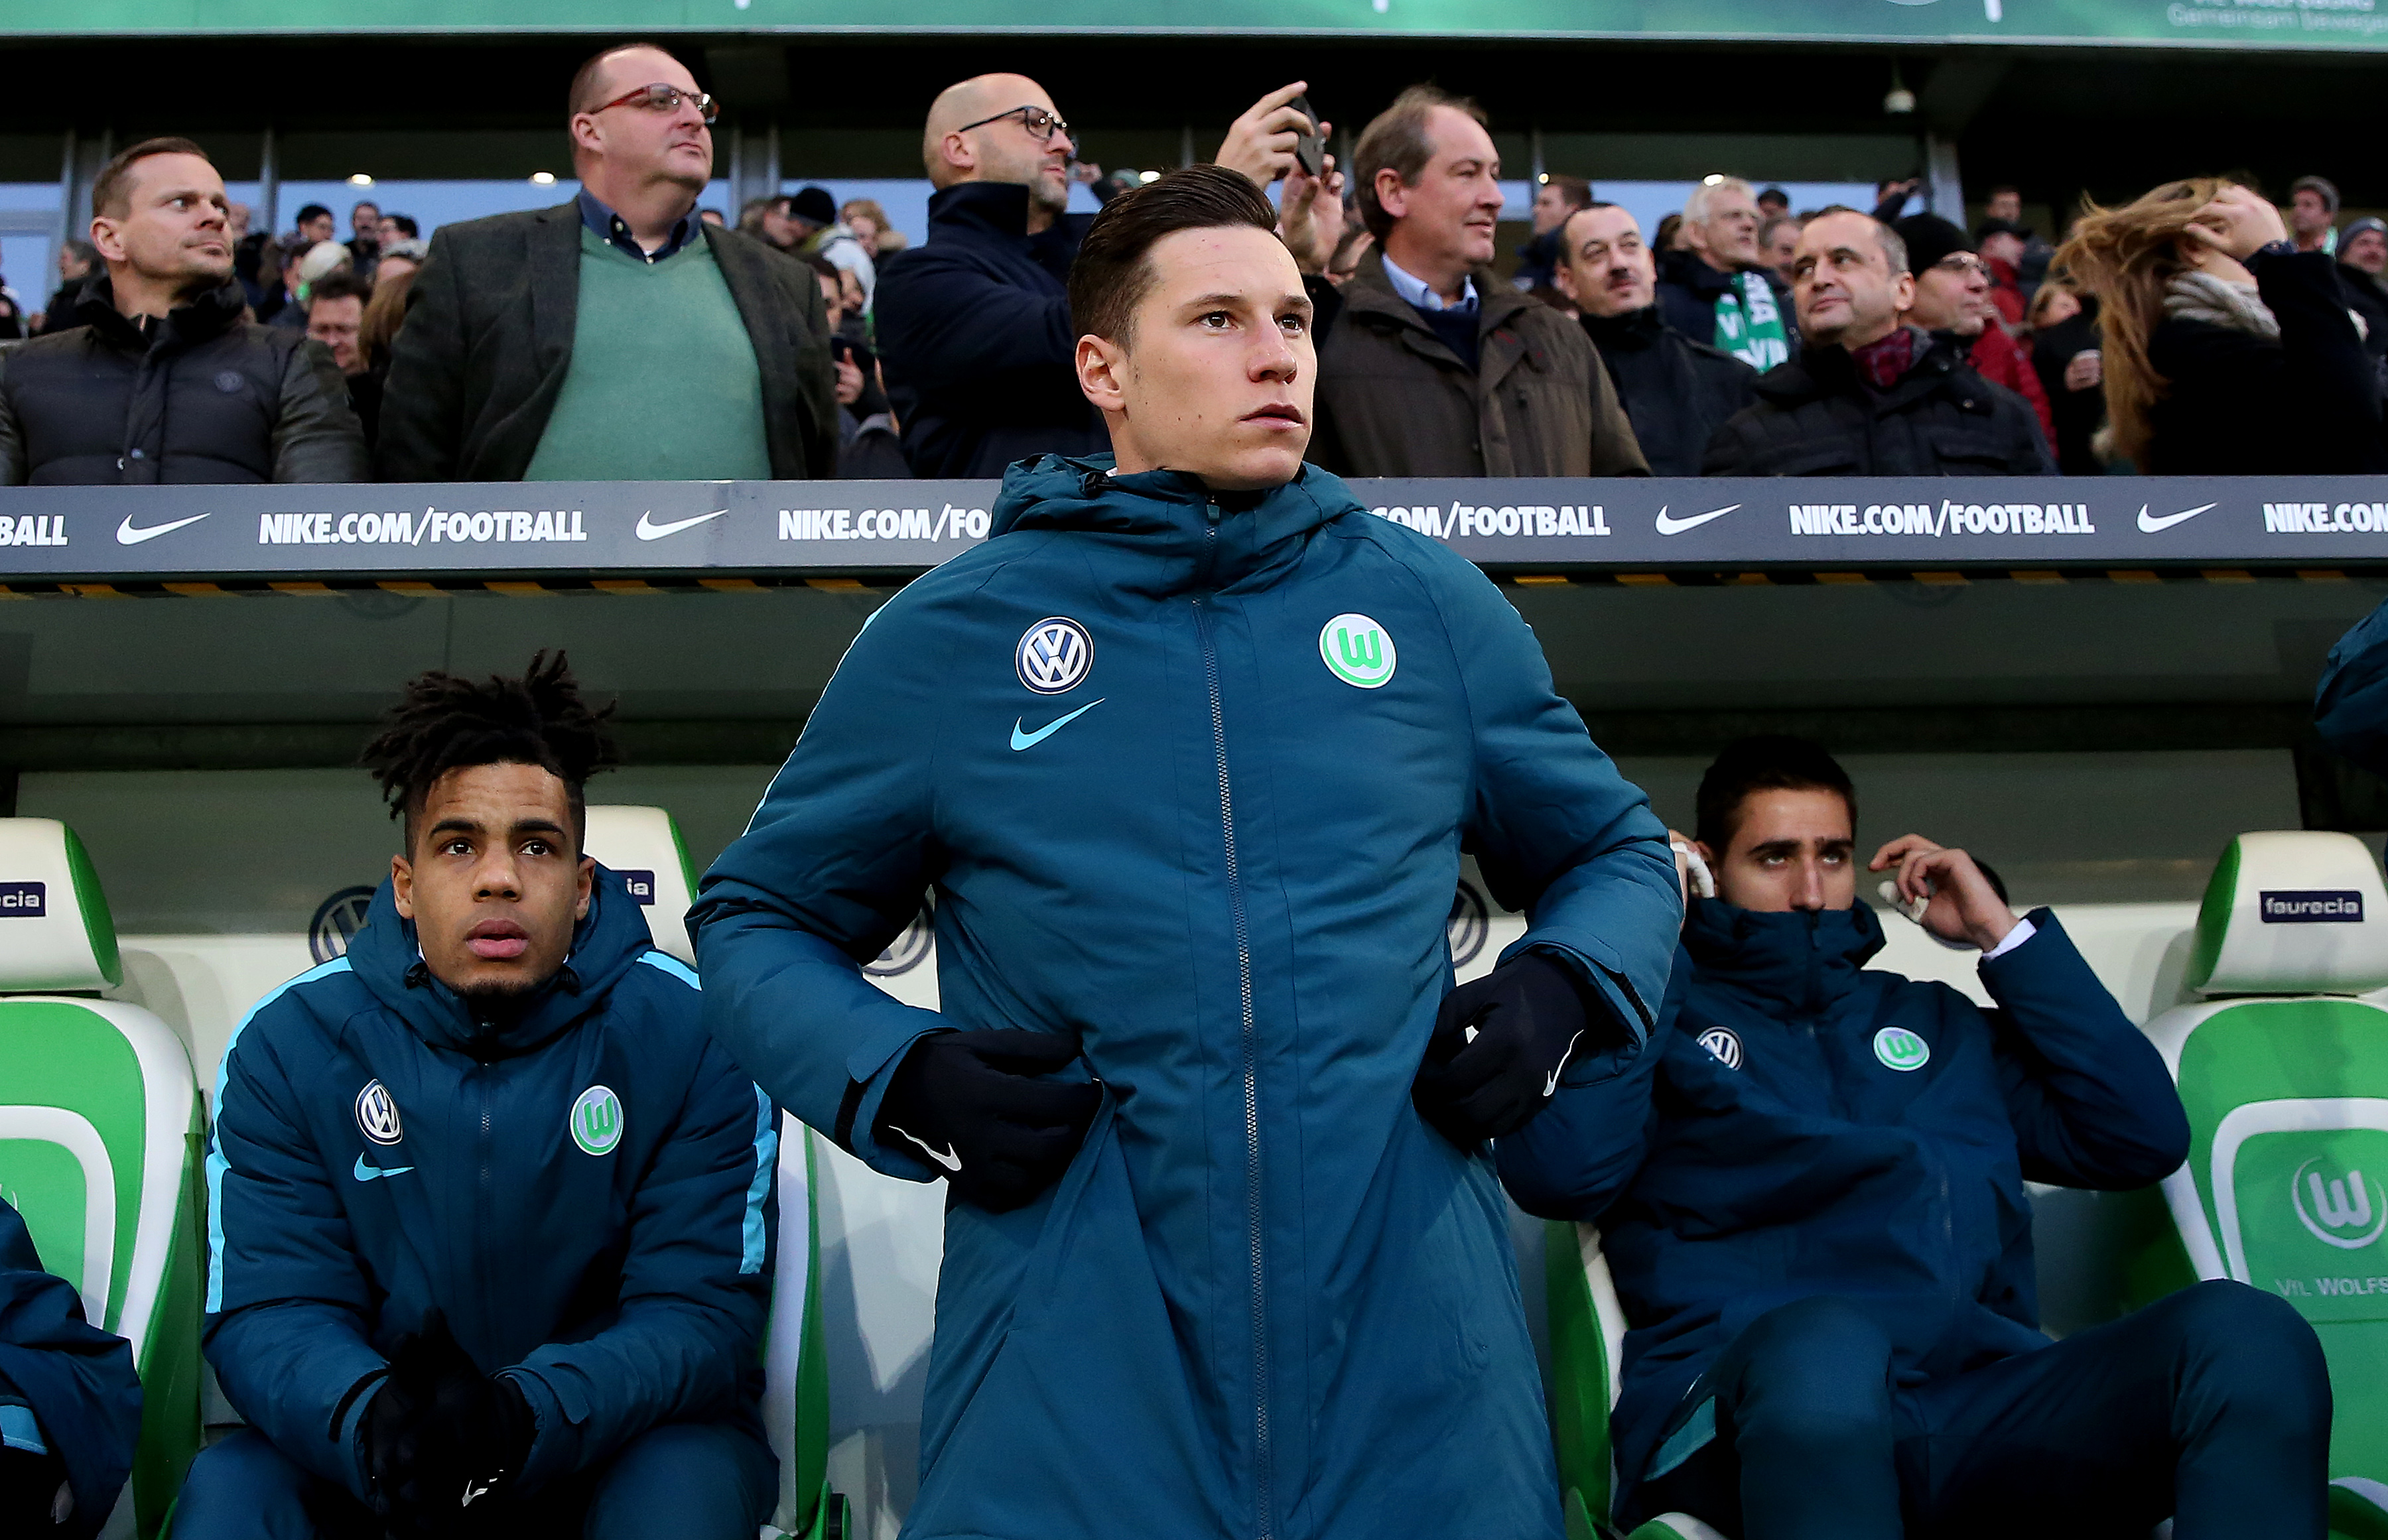 Arsenal transfer target Julian Draxler dropped by Wolfsburg, exit looks imminent